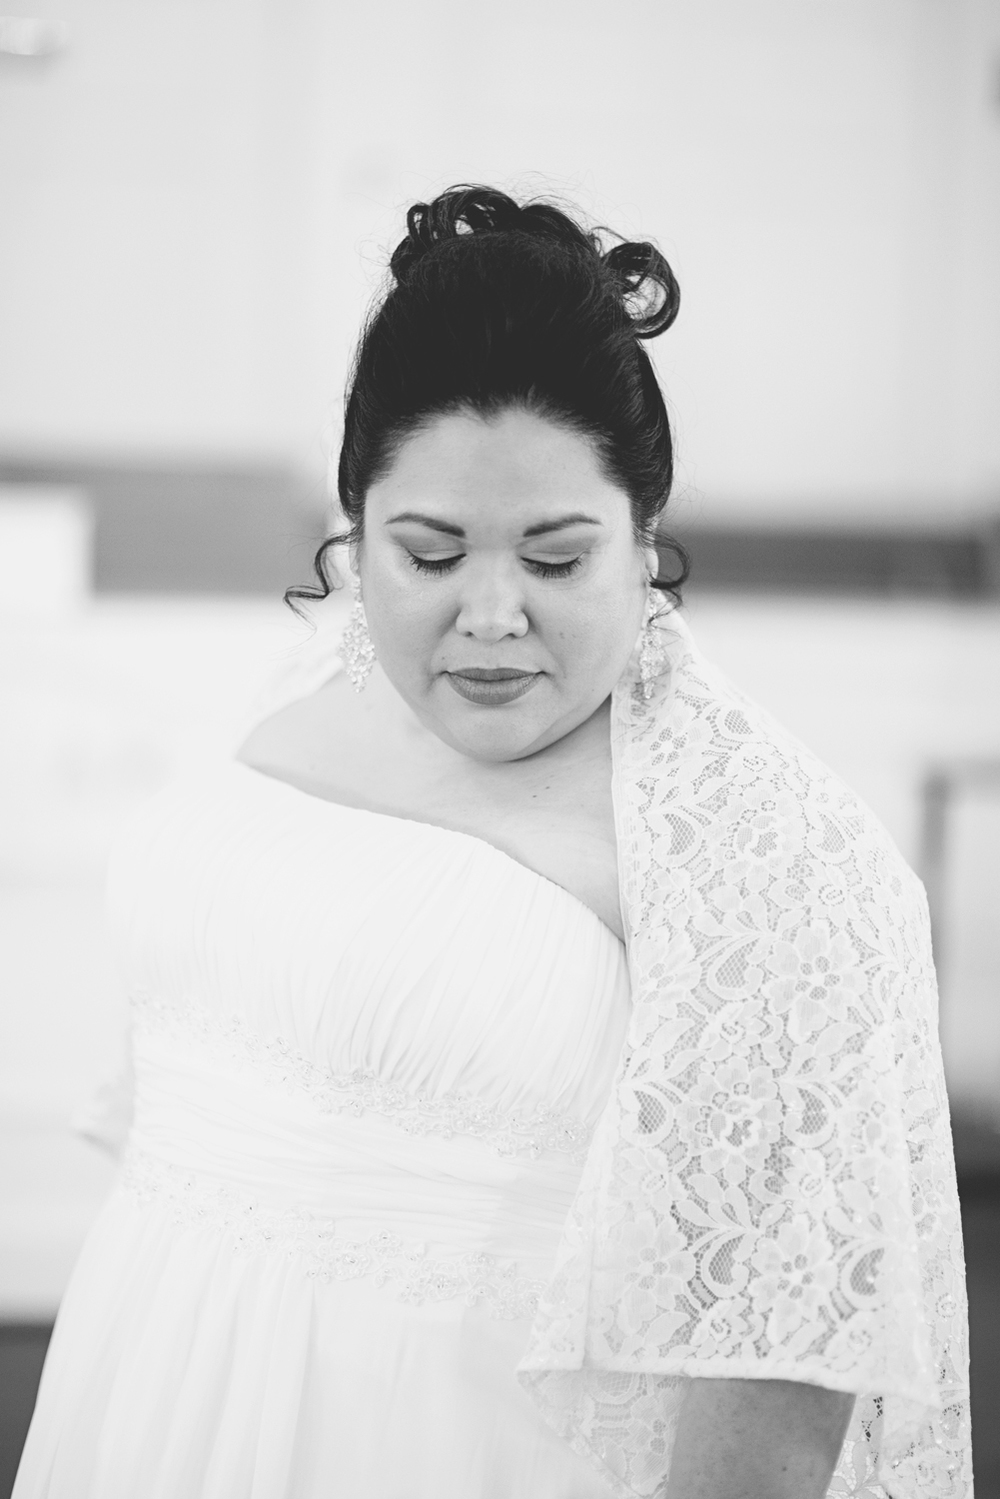 Bridal portraits | Church winter wedding | Black and white